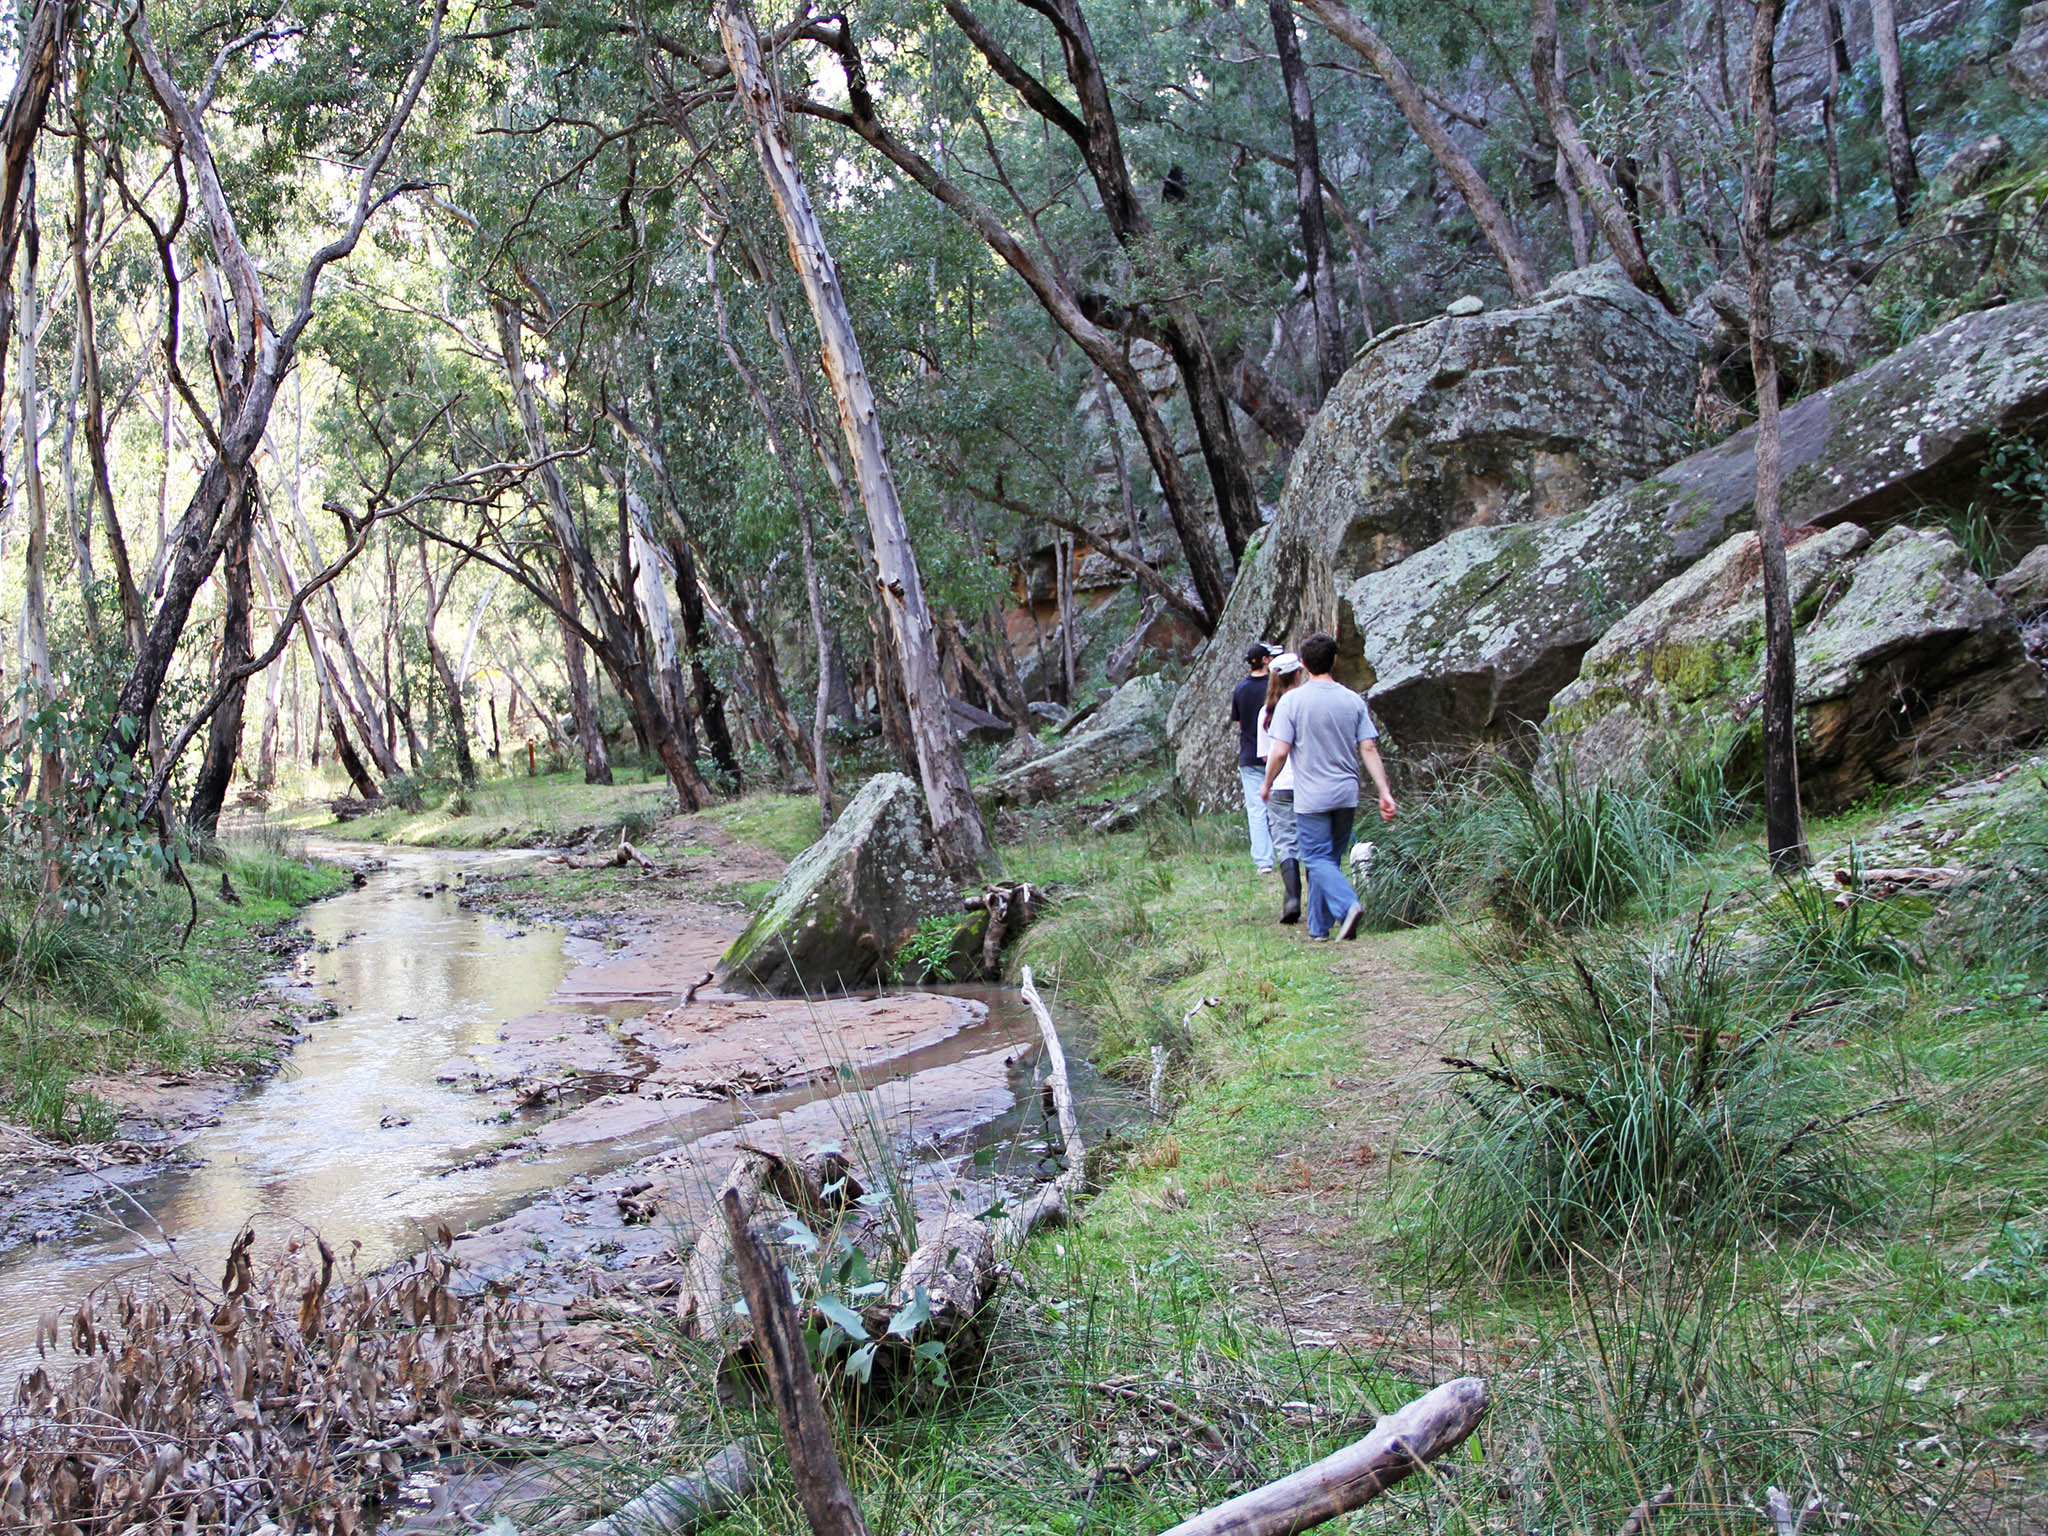 Dandry Gorge bottom walking track with visitors